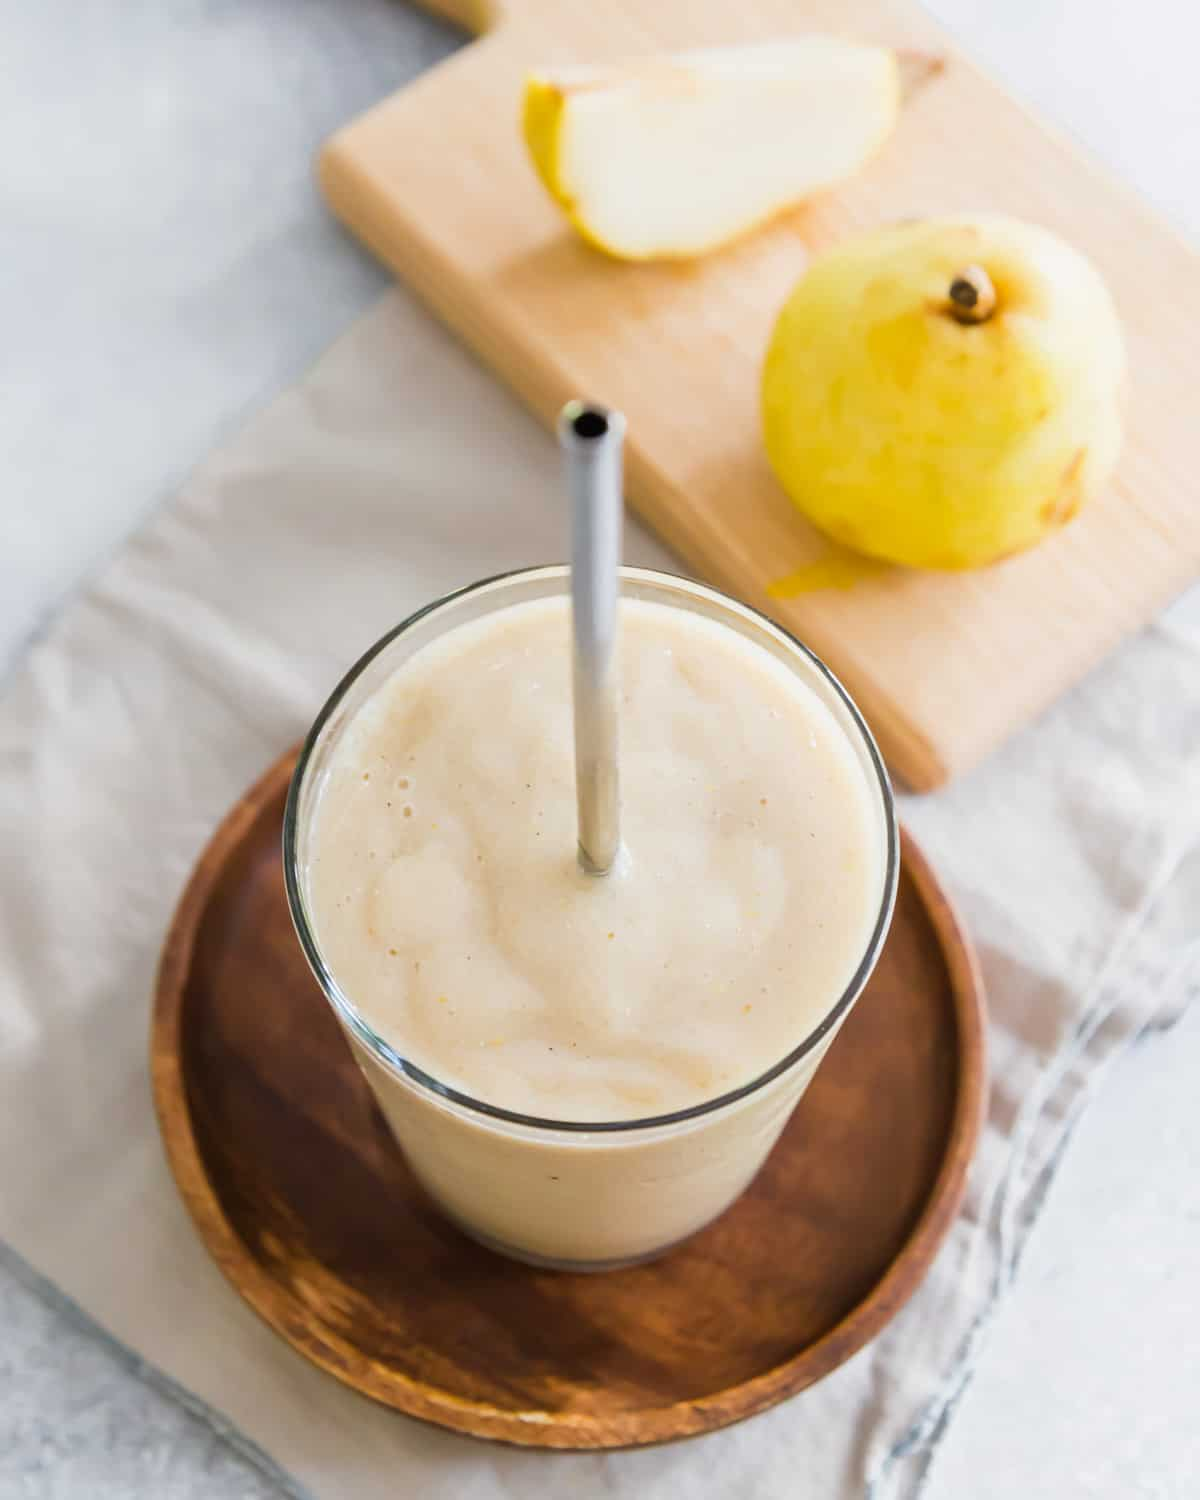 A simple pear smoothie with banana, vanilla, cinnamon and cardamom flavors.